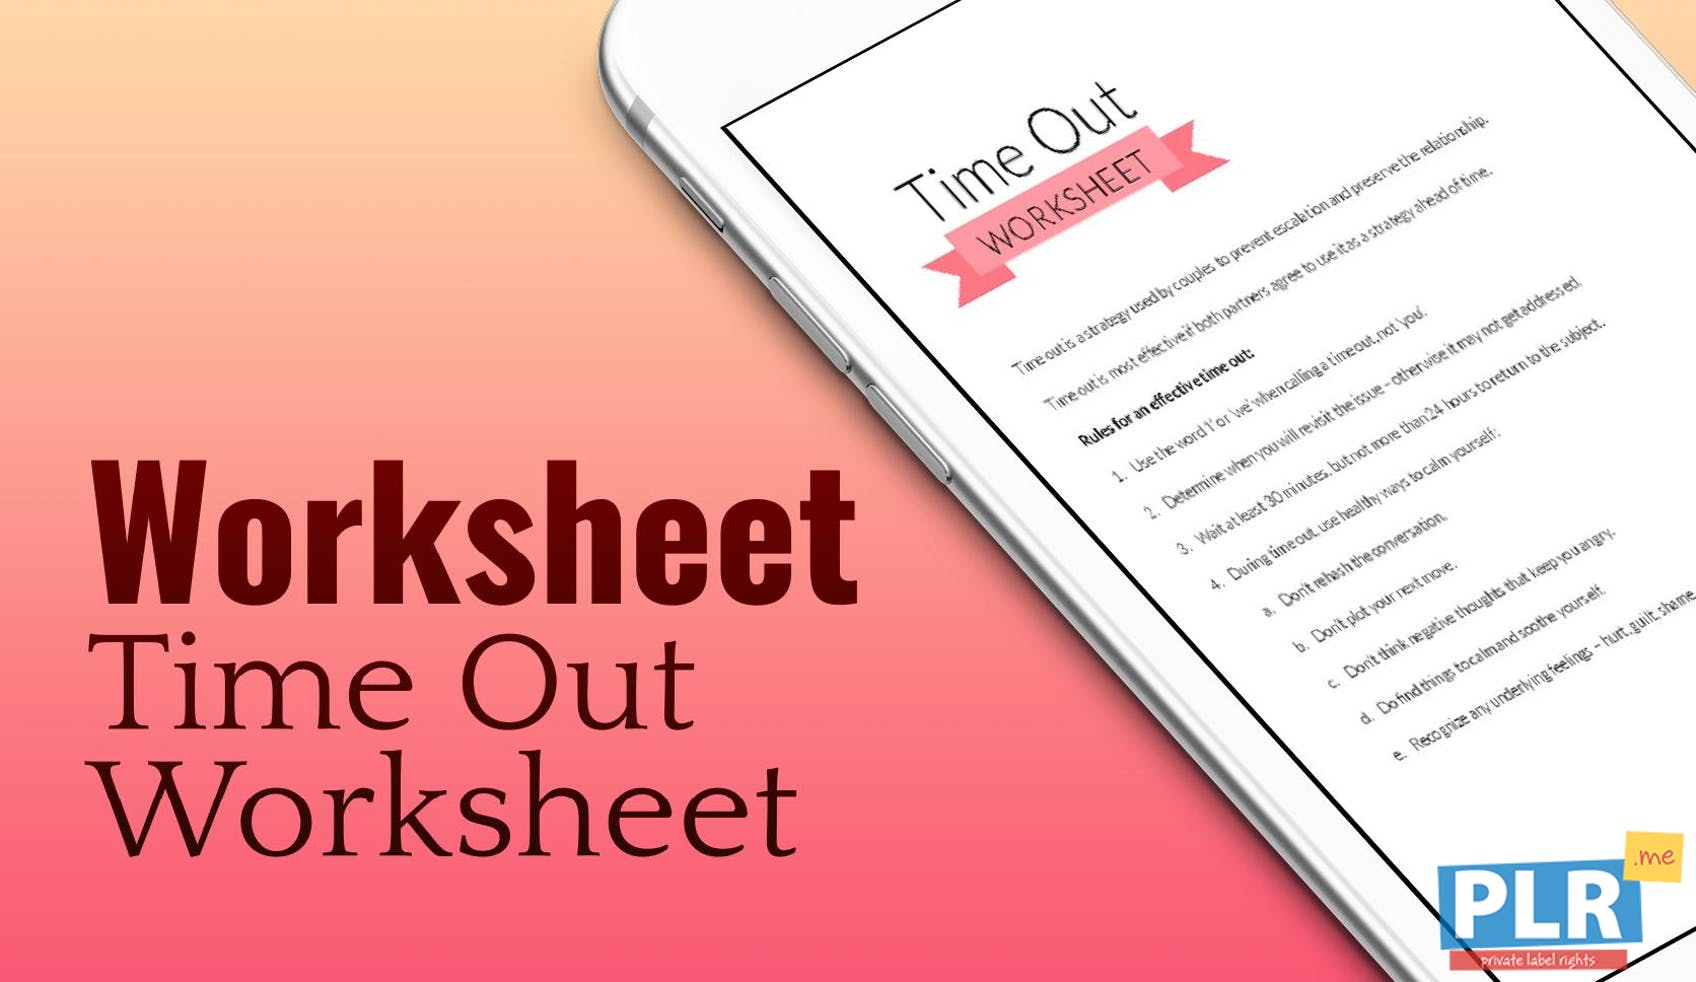 Time Out Worksheet